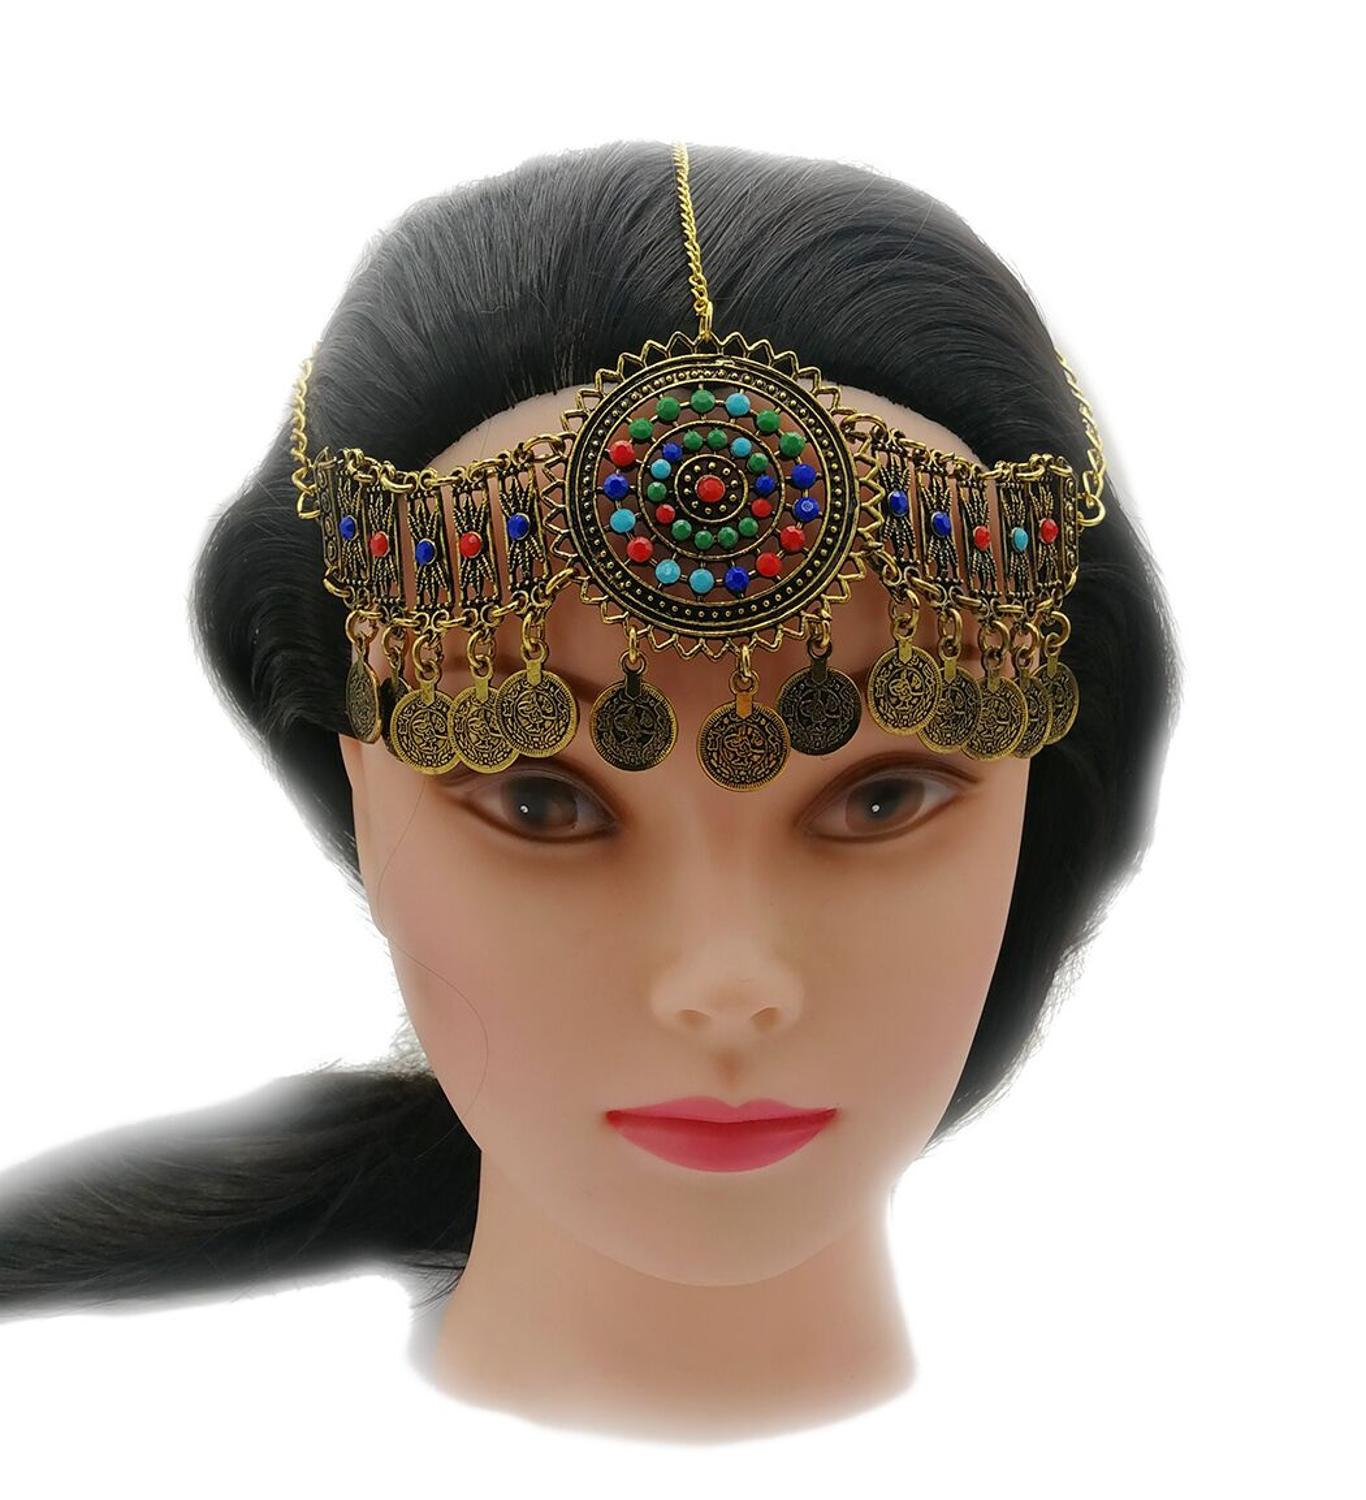 us $3.32 30% off|bohemia coin bead head chain headdress silver gold bracelet hair accessories gypsy tribal ethnic turkish egypt india jewelry set-in